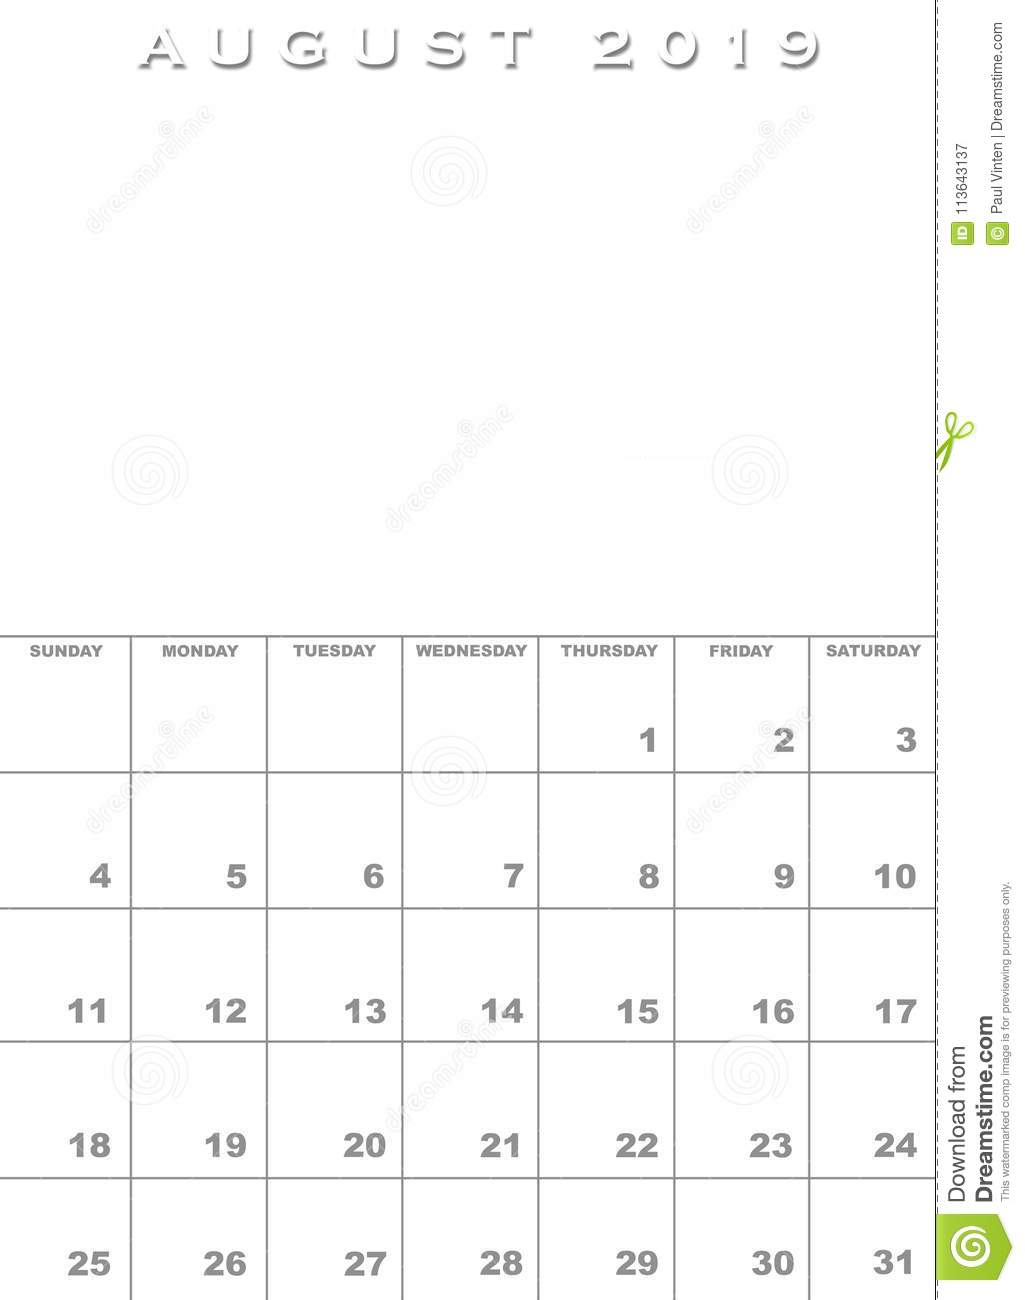 Calendrier Aout2019.Aout 2019 Calibre De Calendrier Illustration Stock